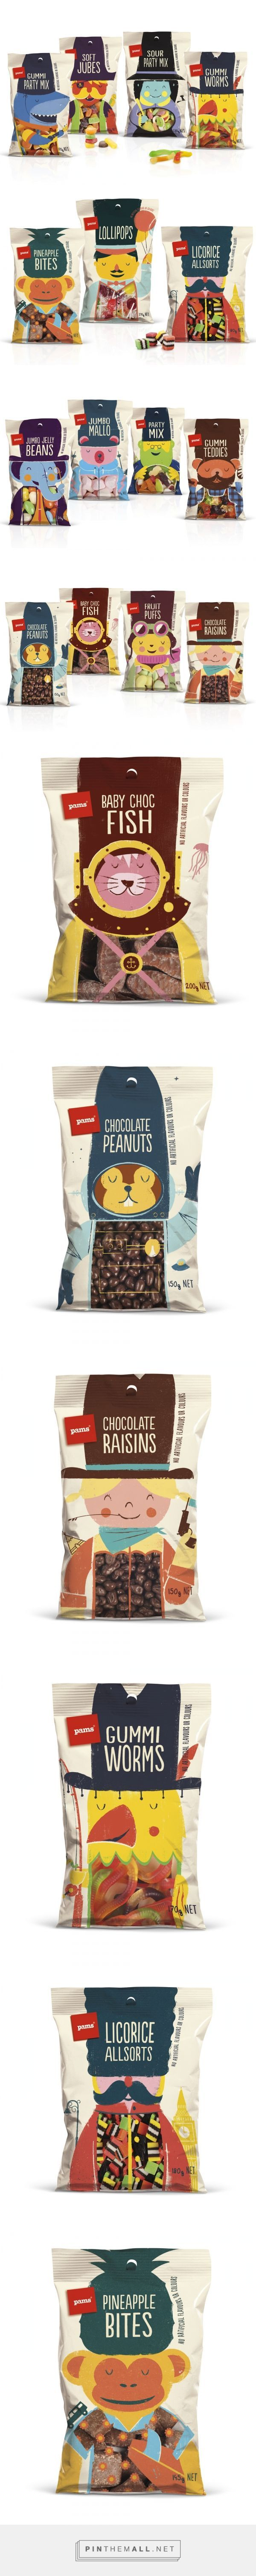 Pams Confectionery Range, Branding & Packaging by Brother Design